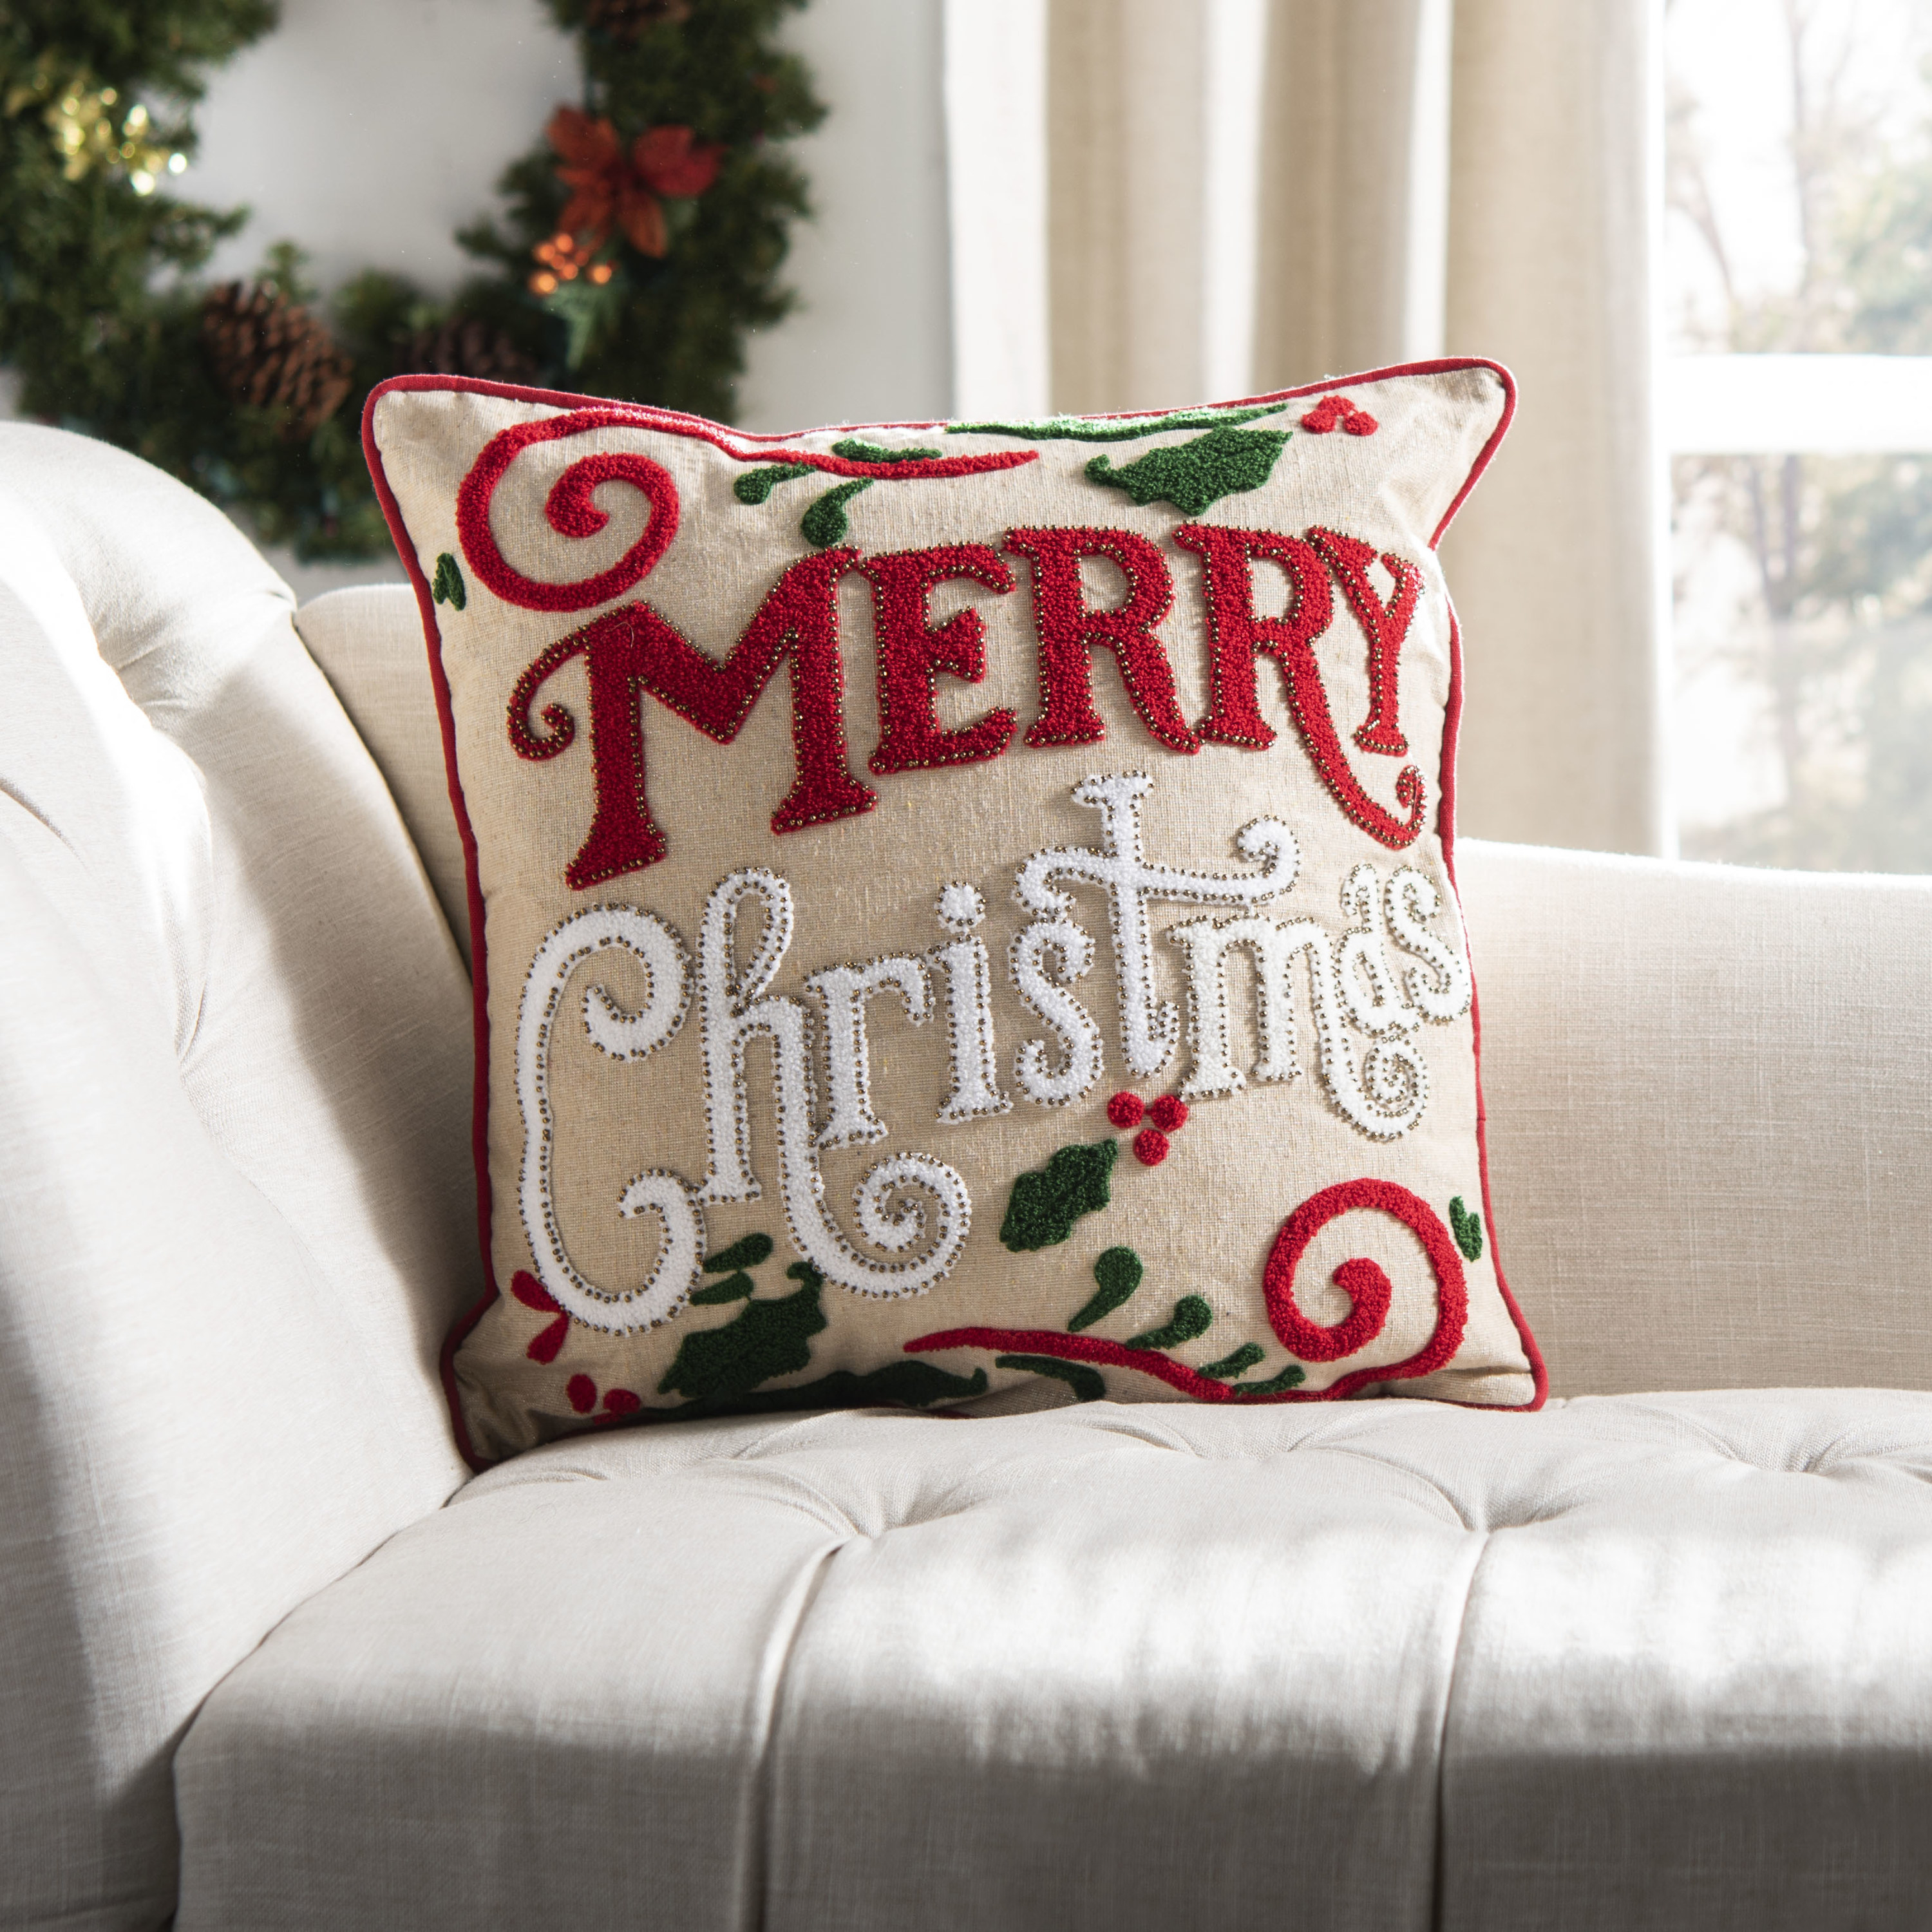 The red and white pillow on a couch